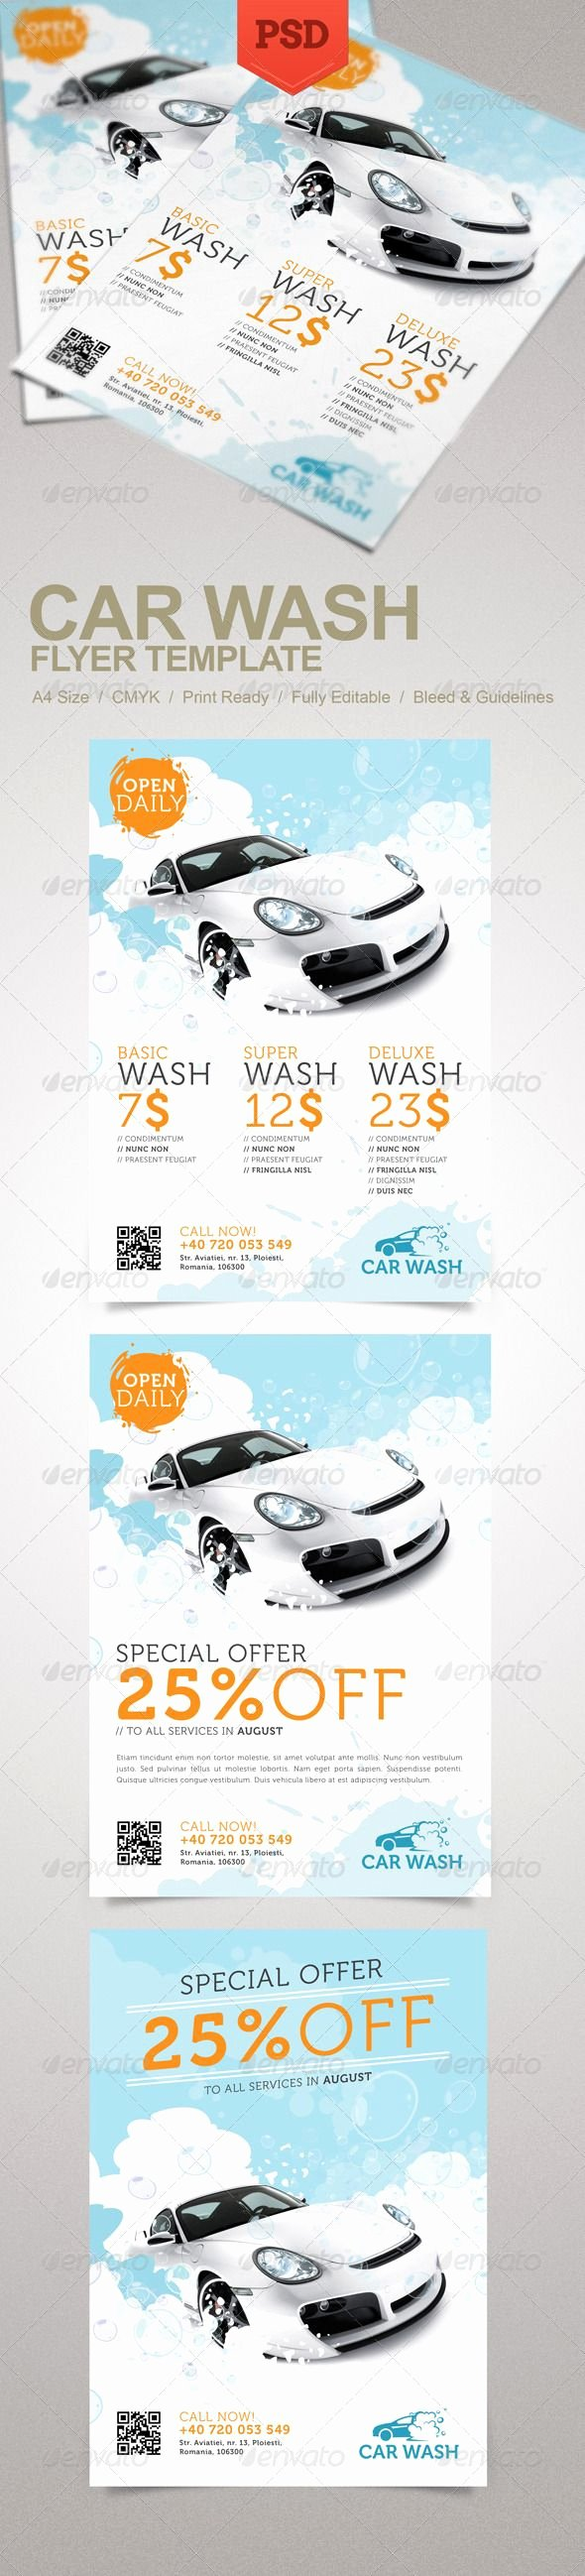 Car Wash Flyer Template Beautiful Car Wash Flyer